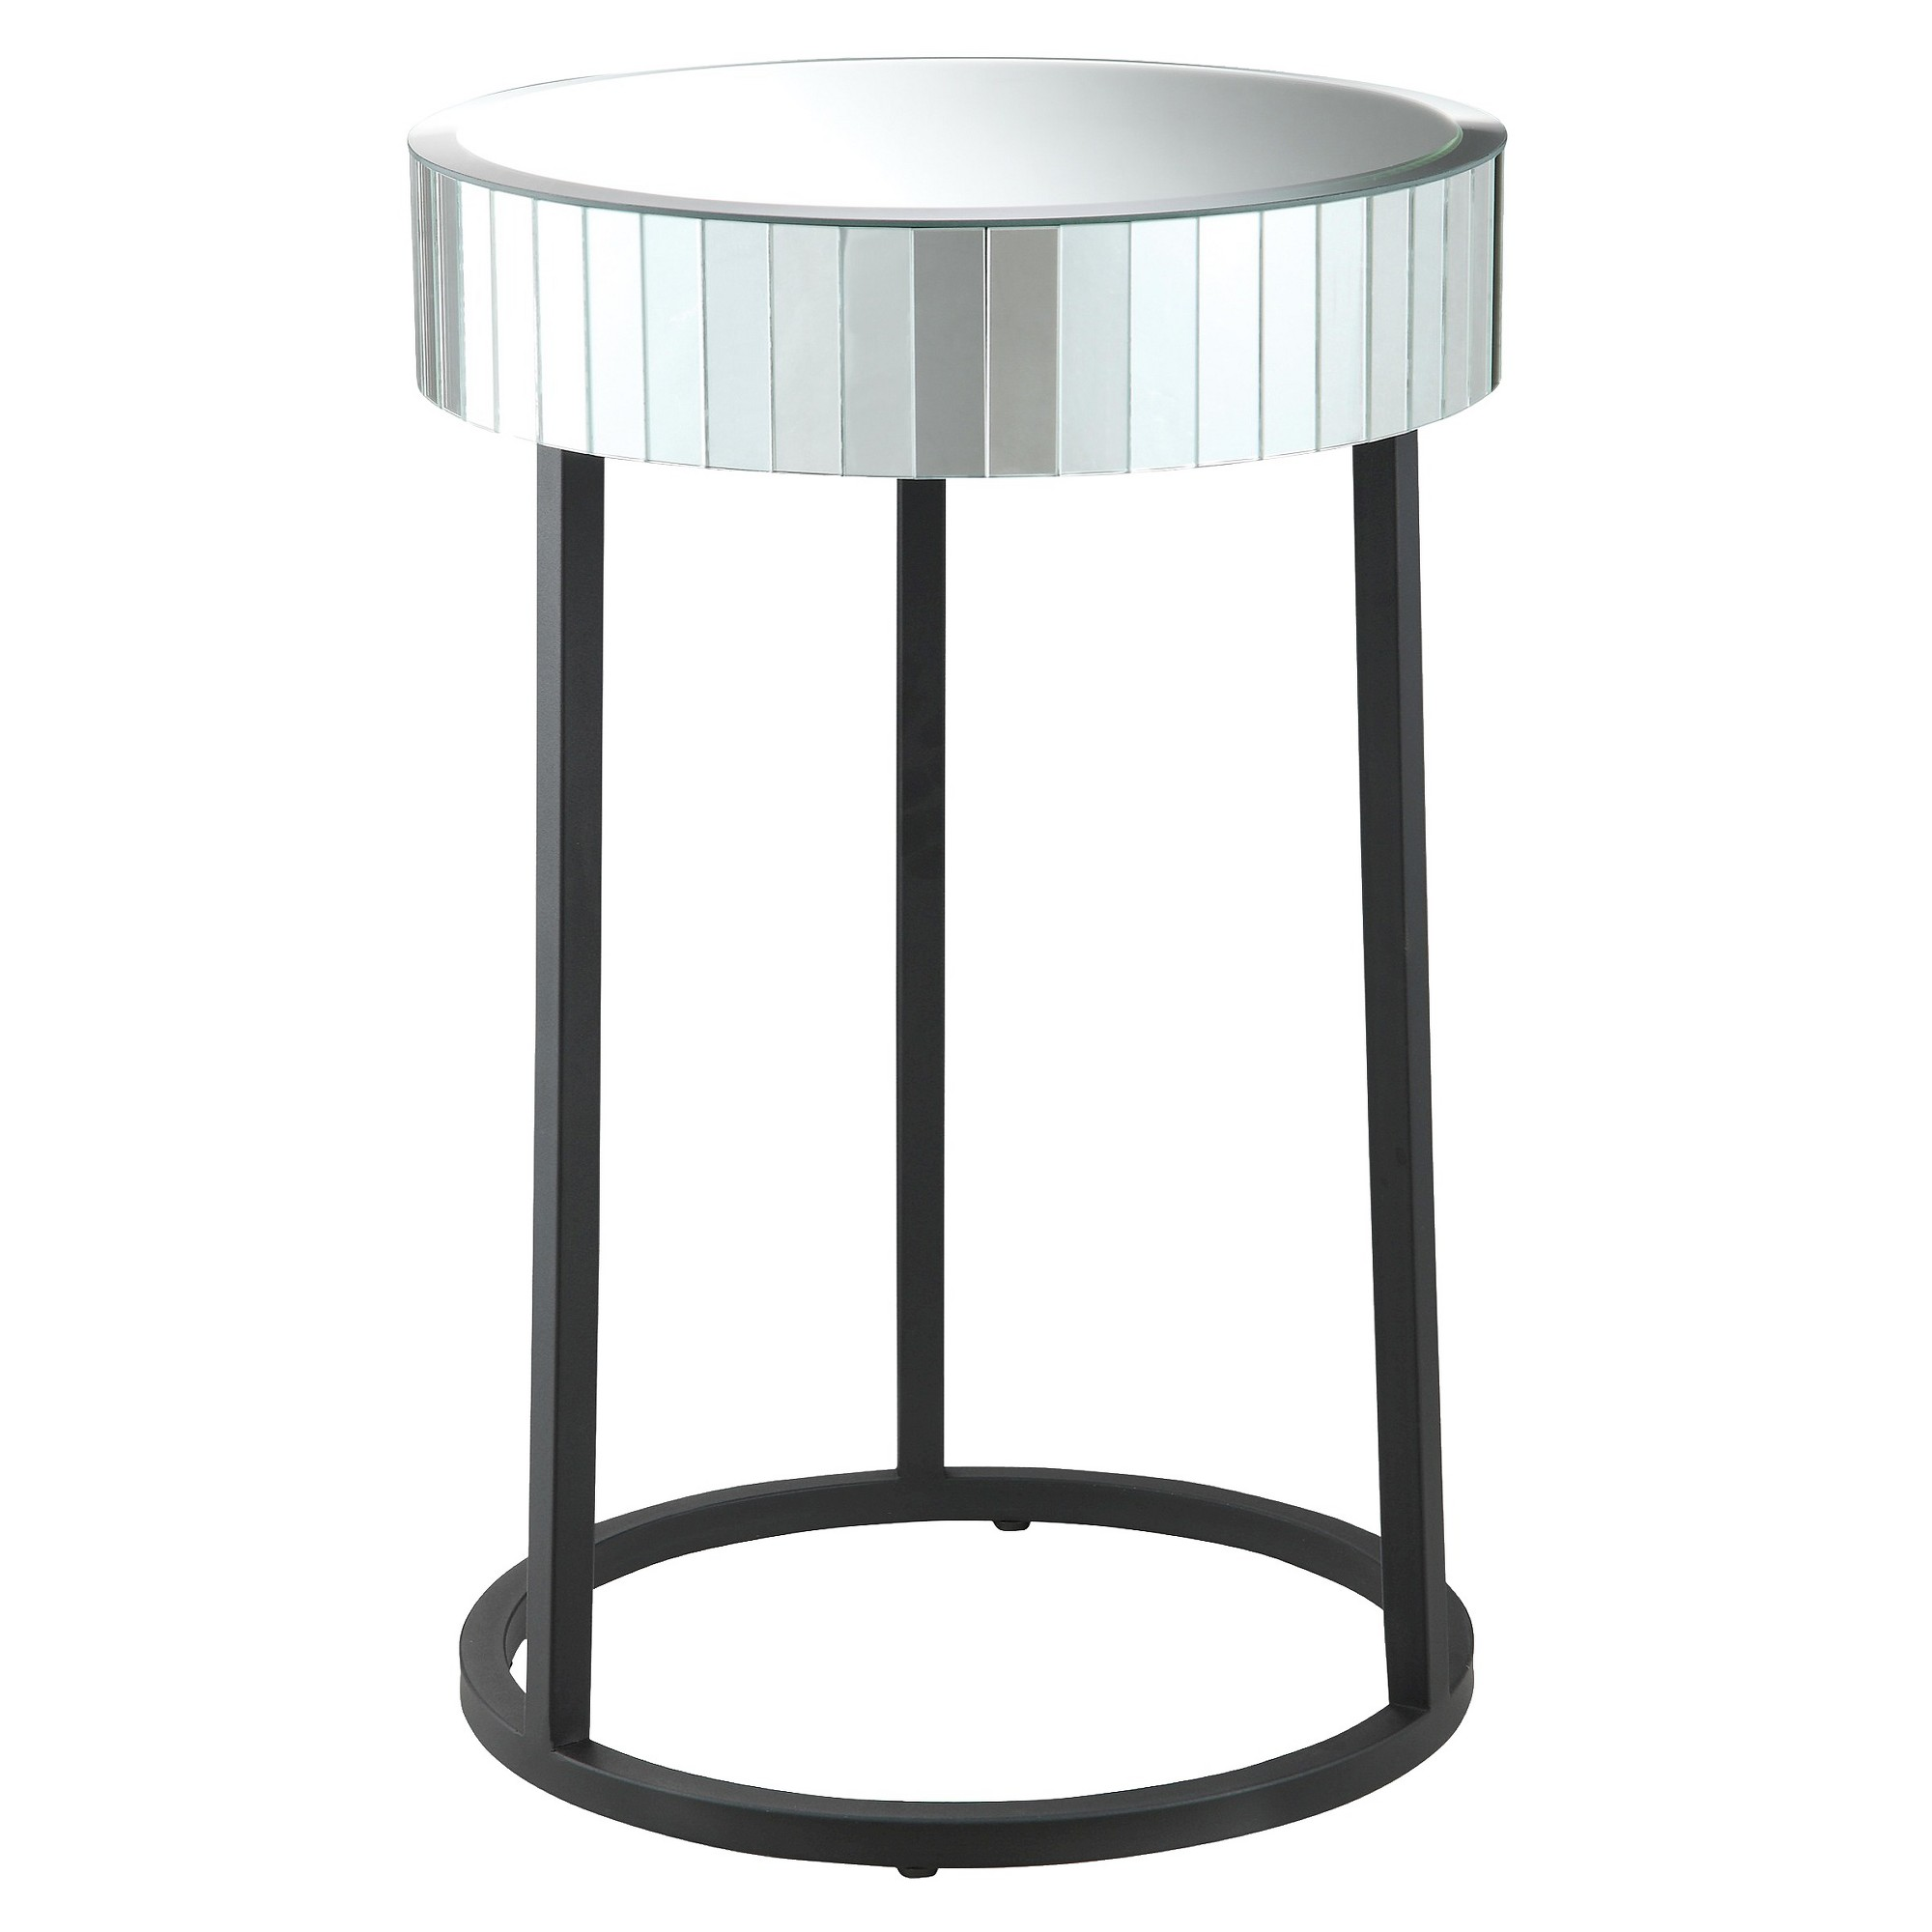 krystal round mirror accent table with metal legs office star black mirrored outdoor lights white coffee shelf west elm globe lamp box ikea young america furniture target circular